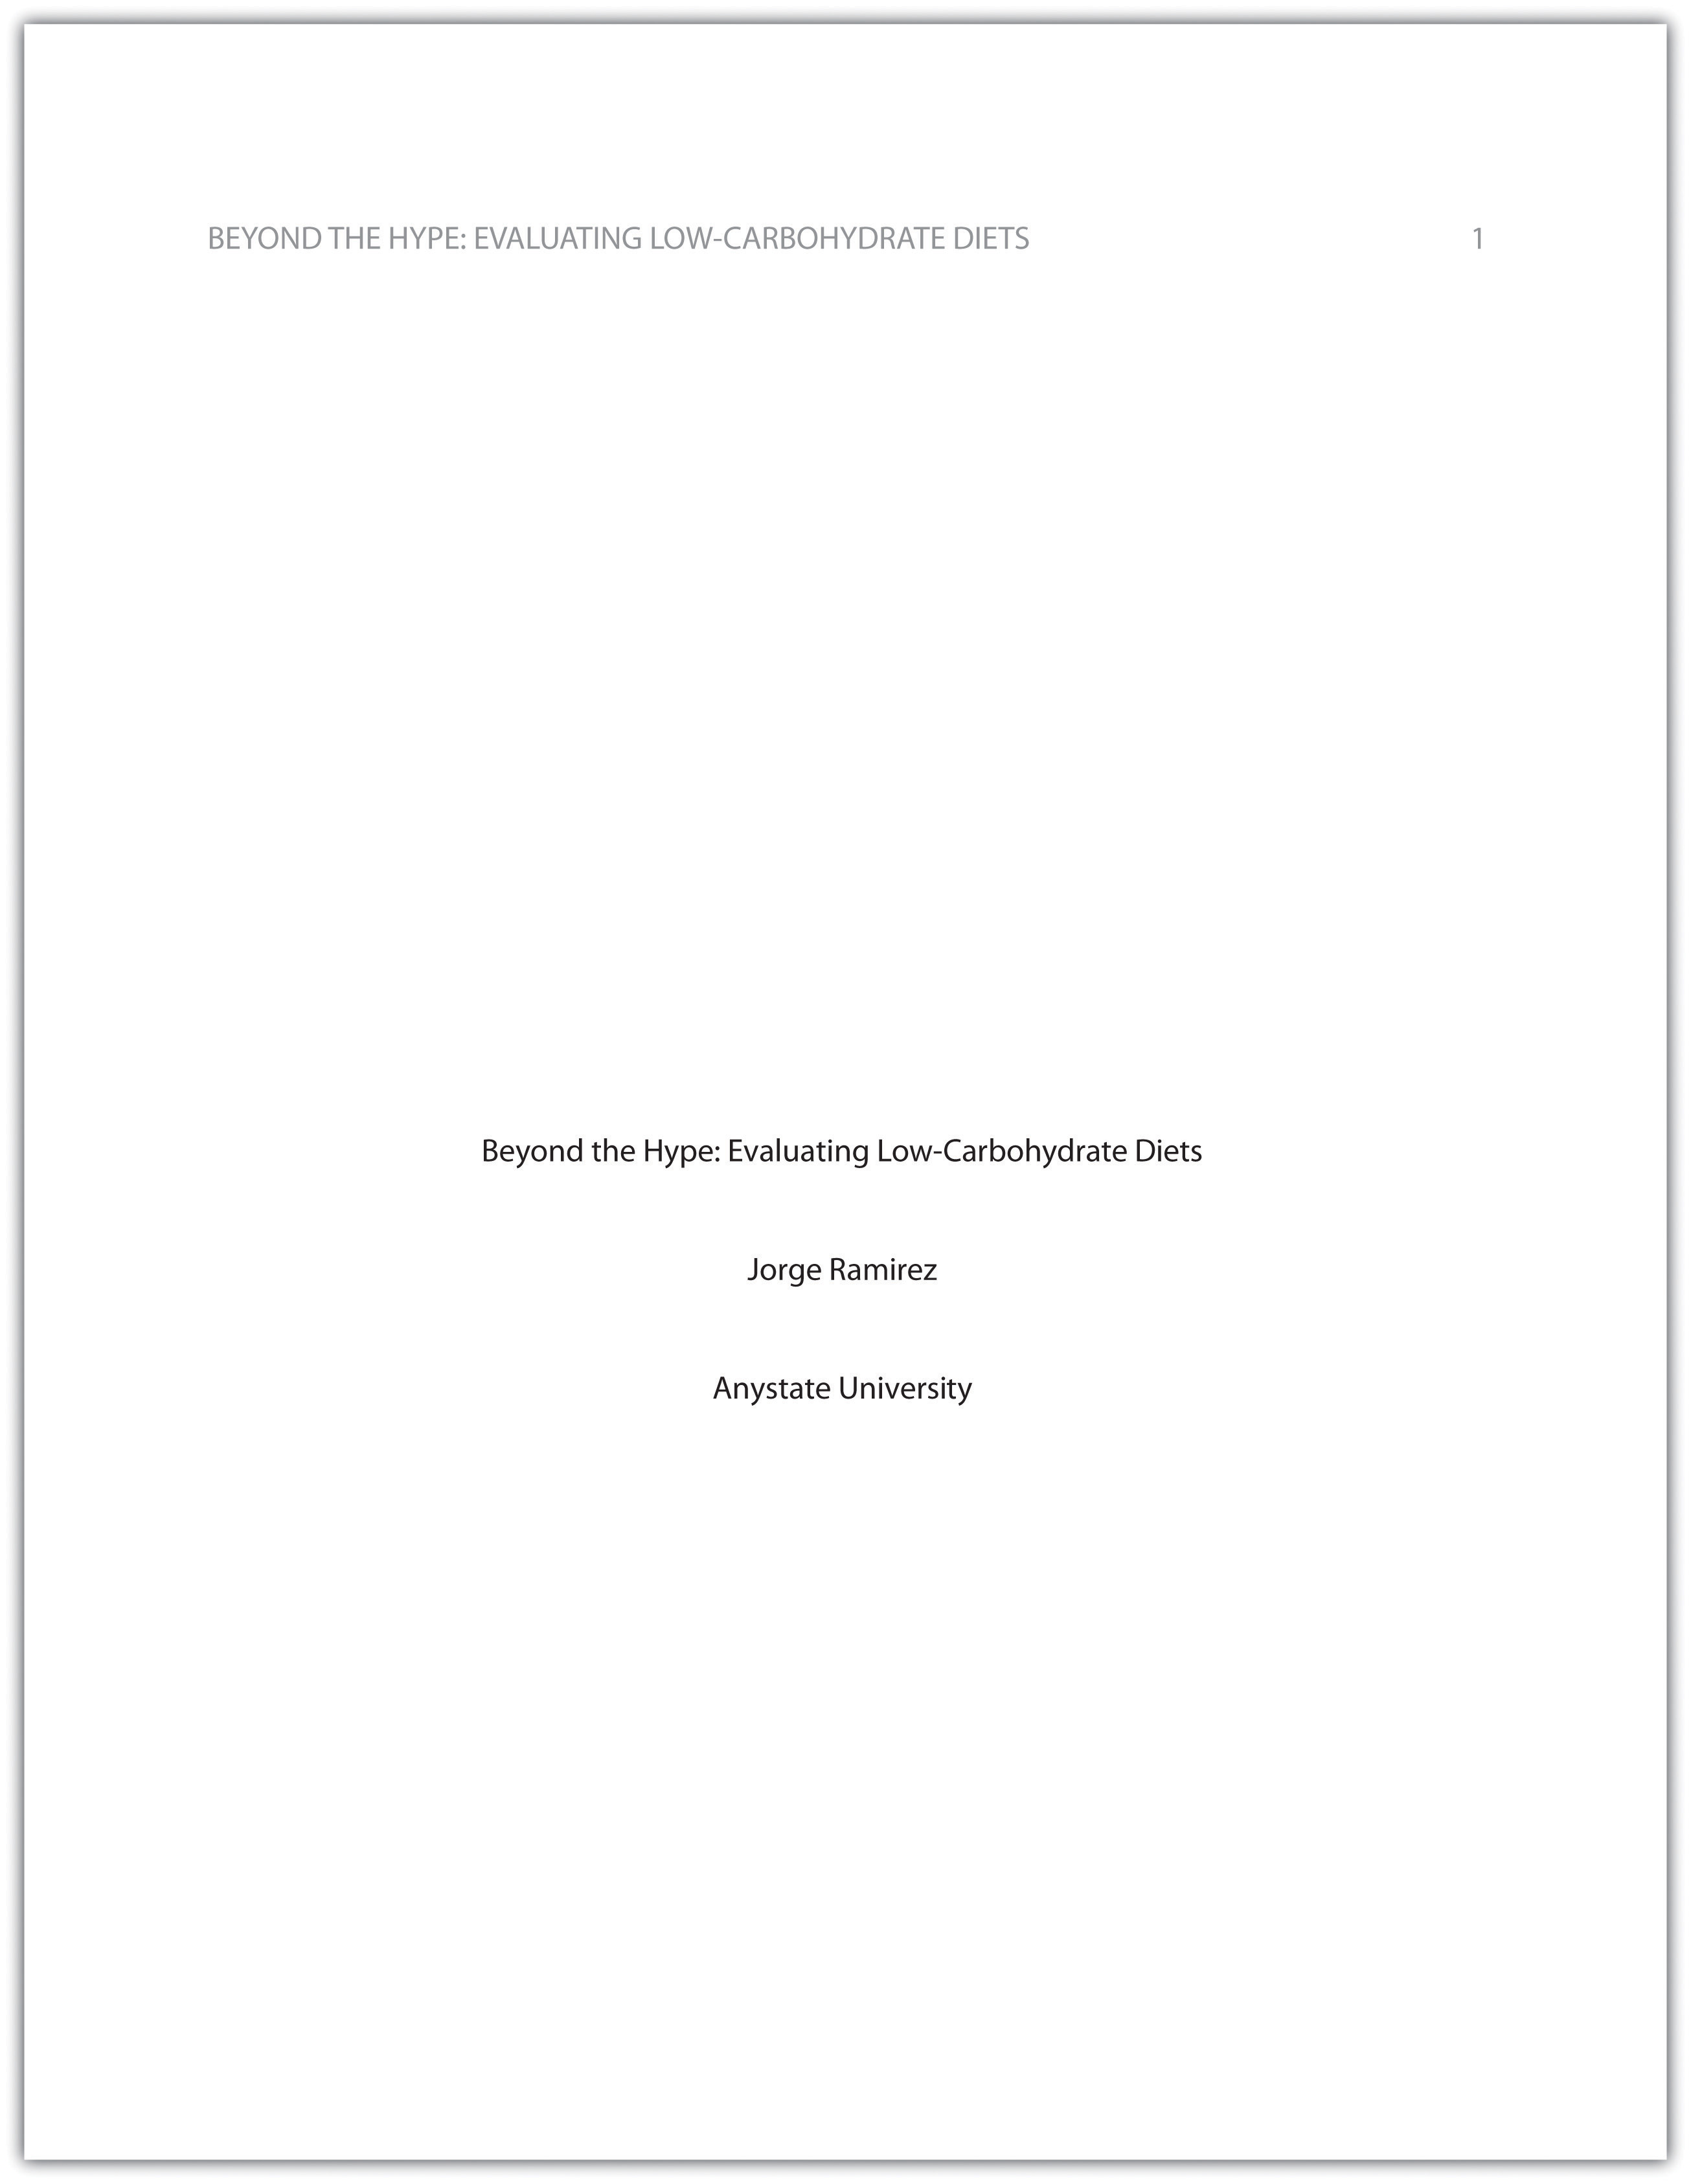 002 Research Paper Cover Page Apa Excellent Reference Format Sample Full